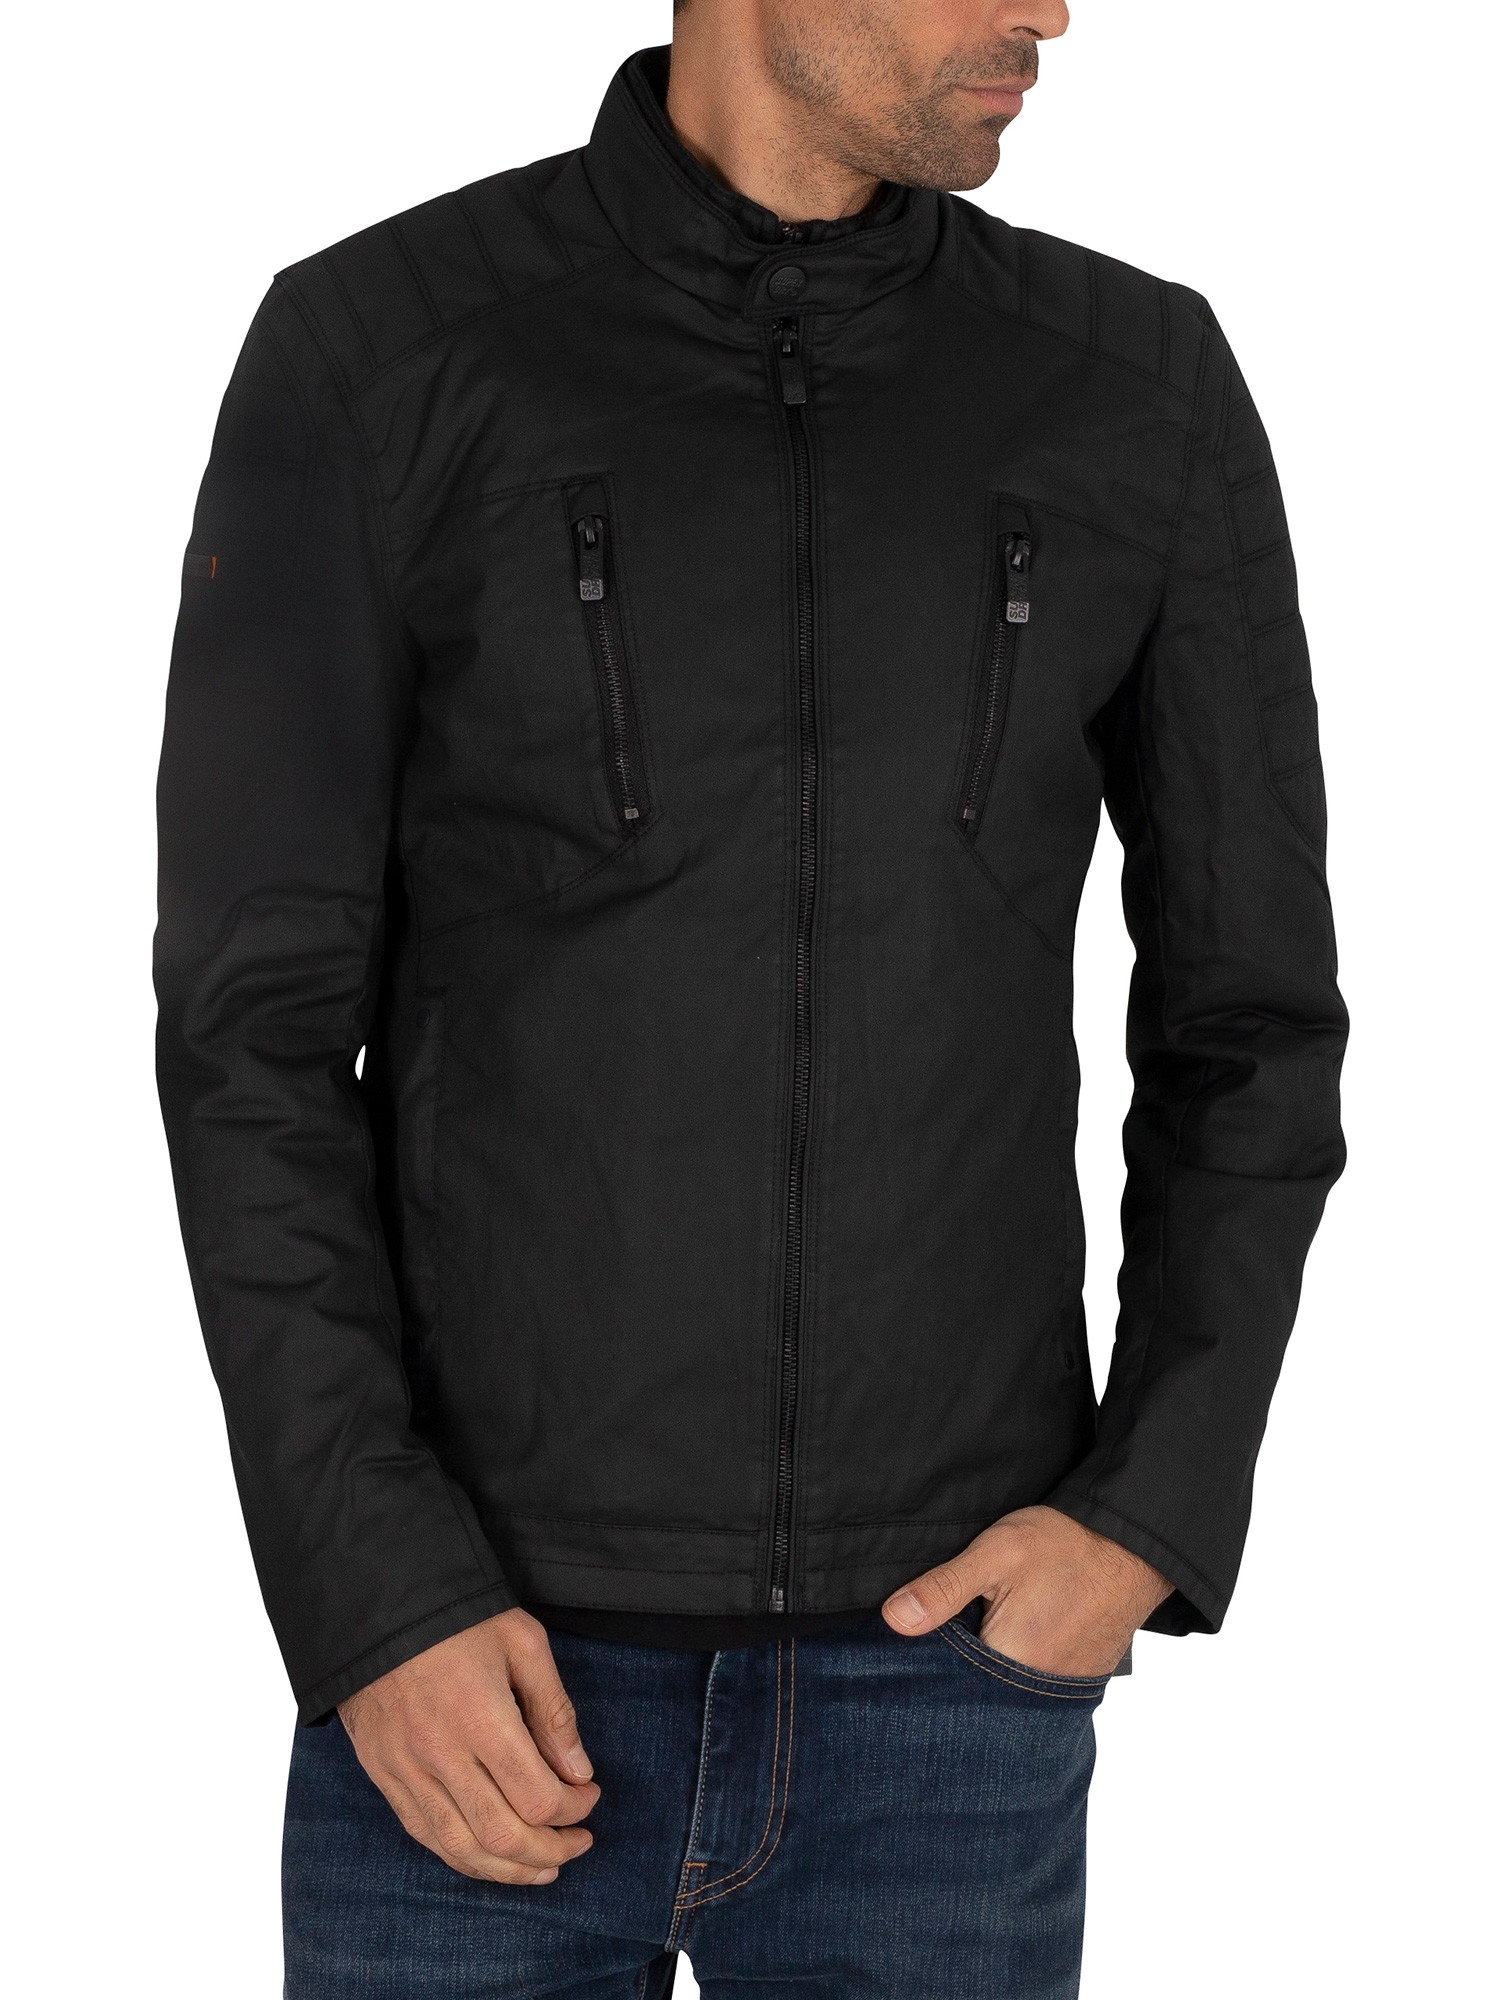 Superdry Carbon Biker Jacket - Black